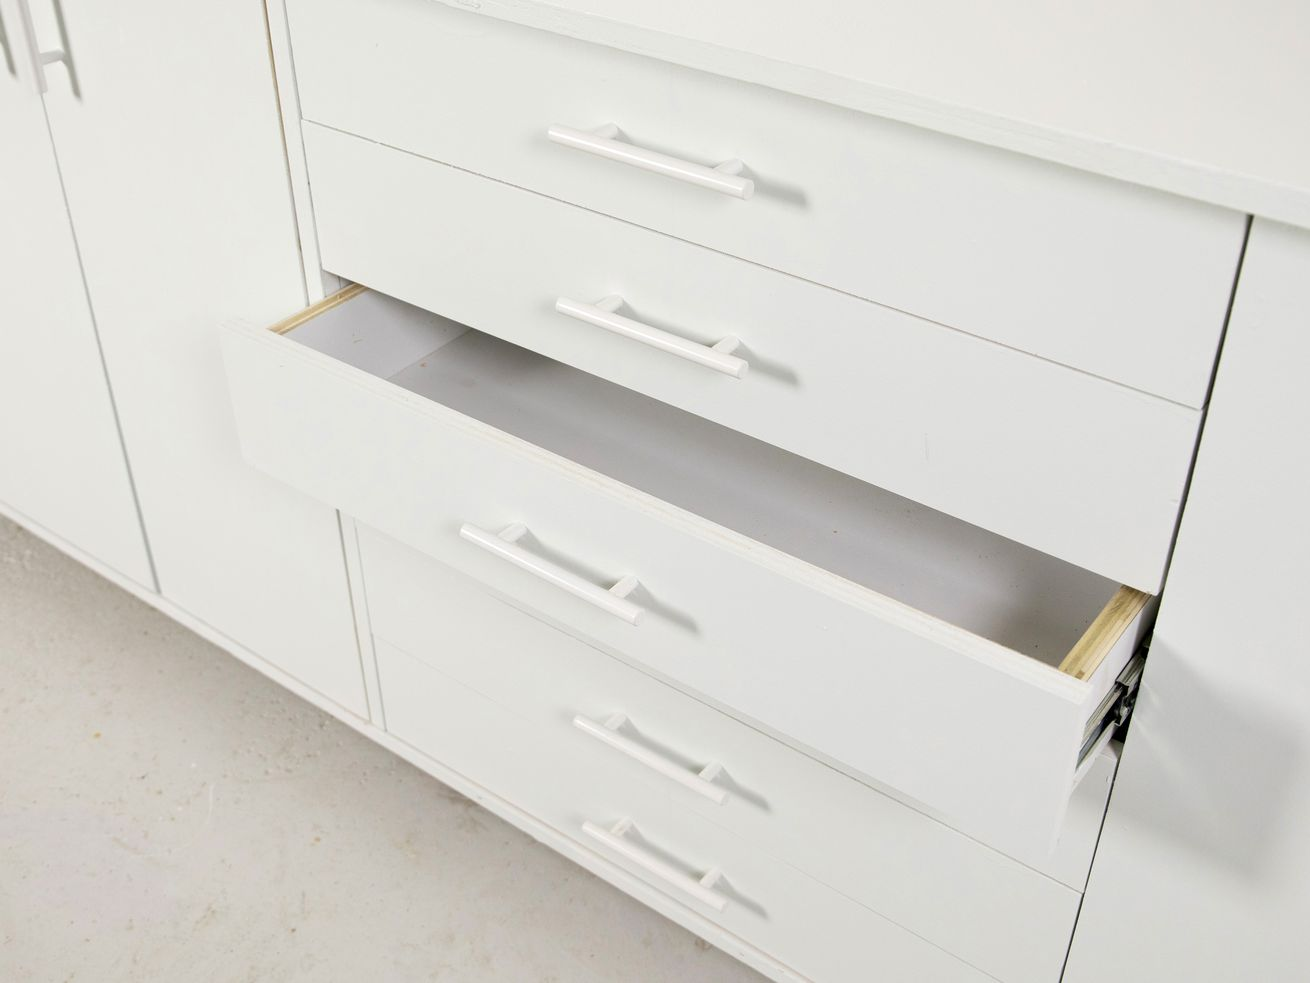 How to Add Drawers to a Mobile Workbench